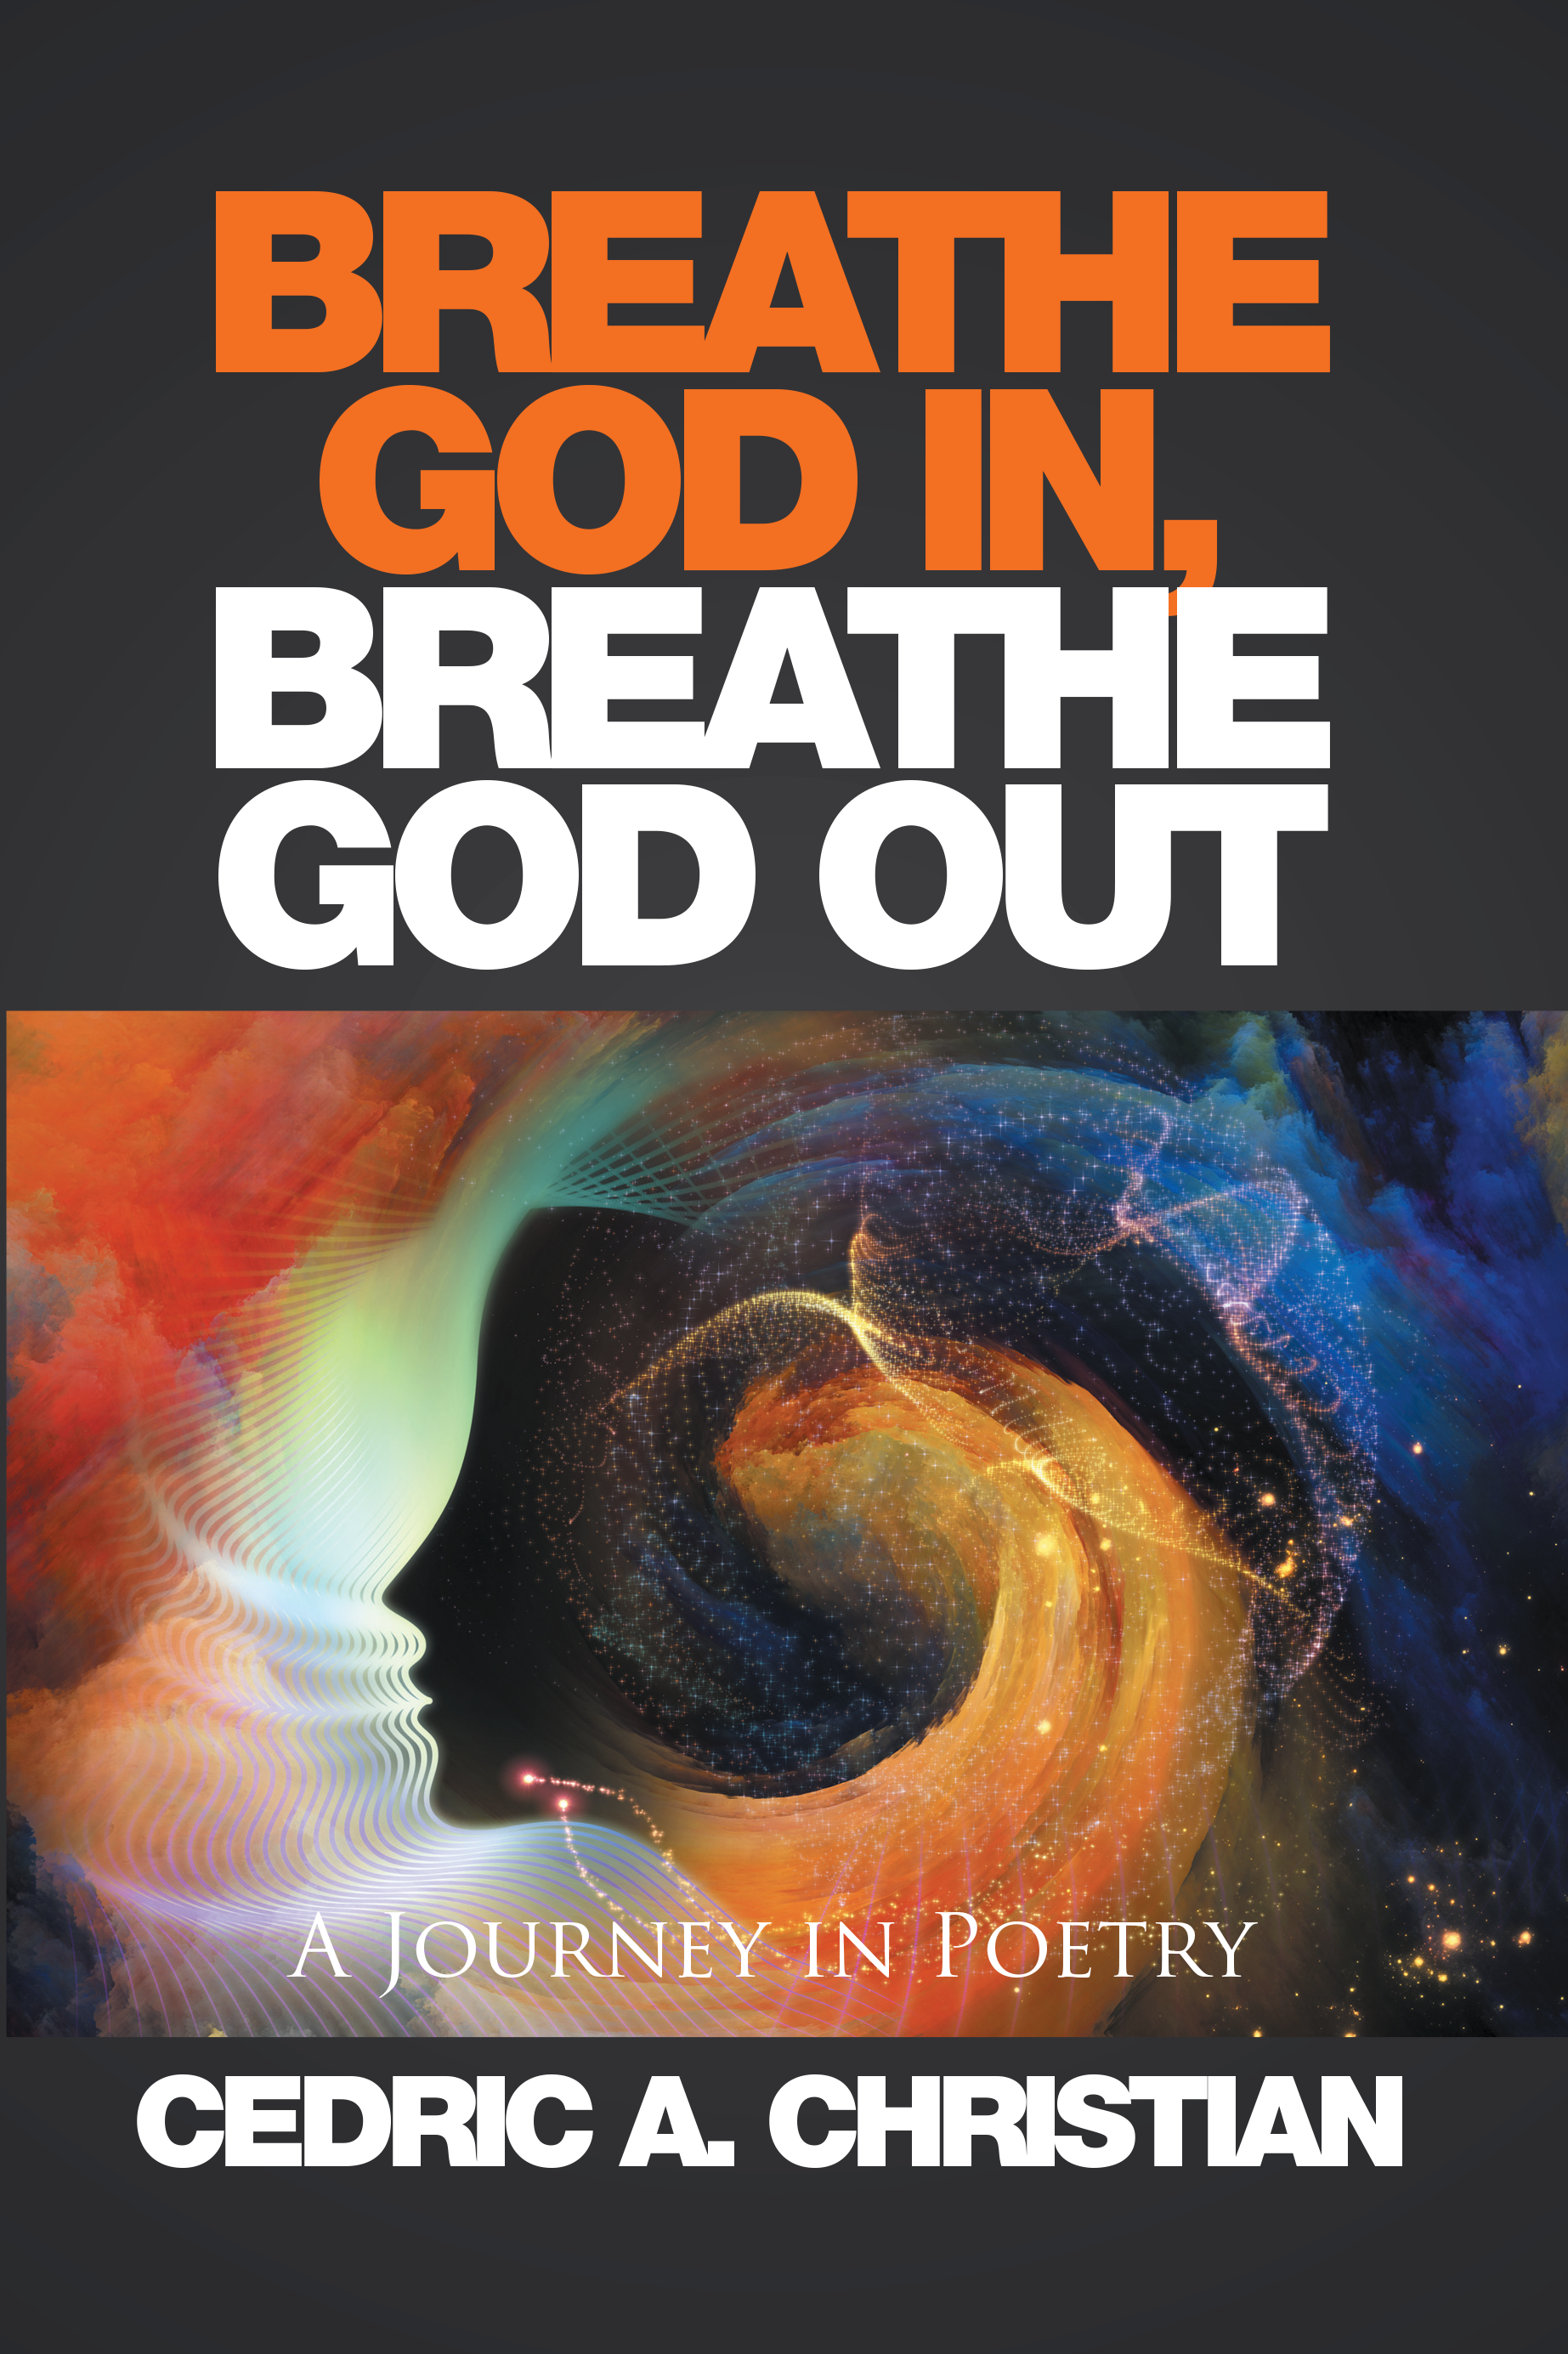 Breathe God In, Breathe God Out